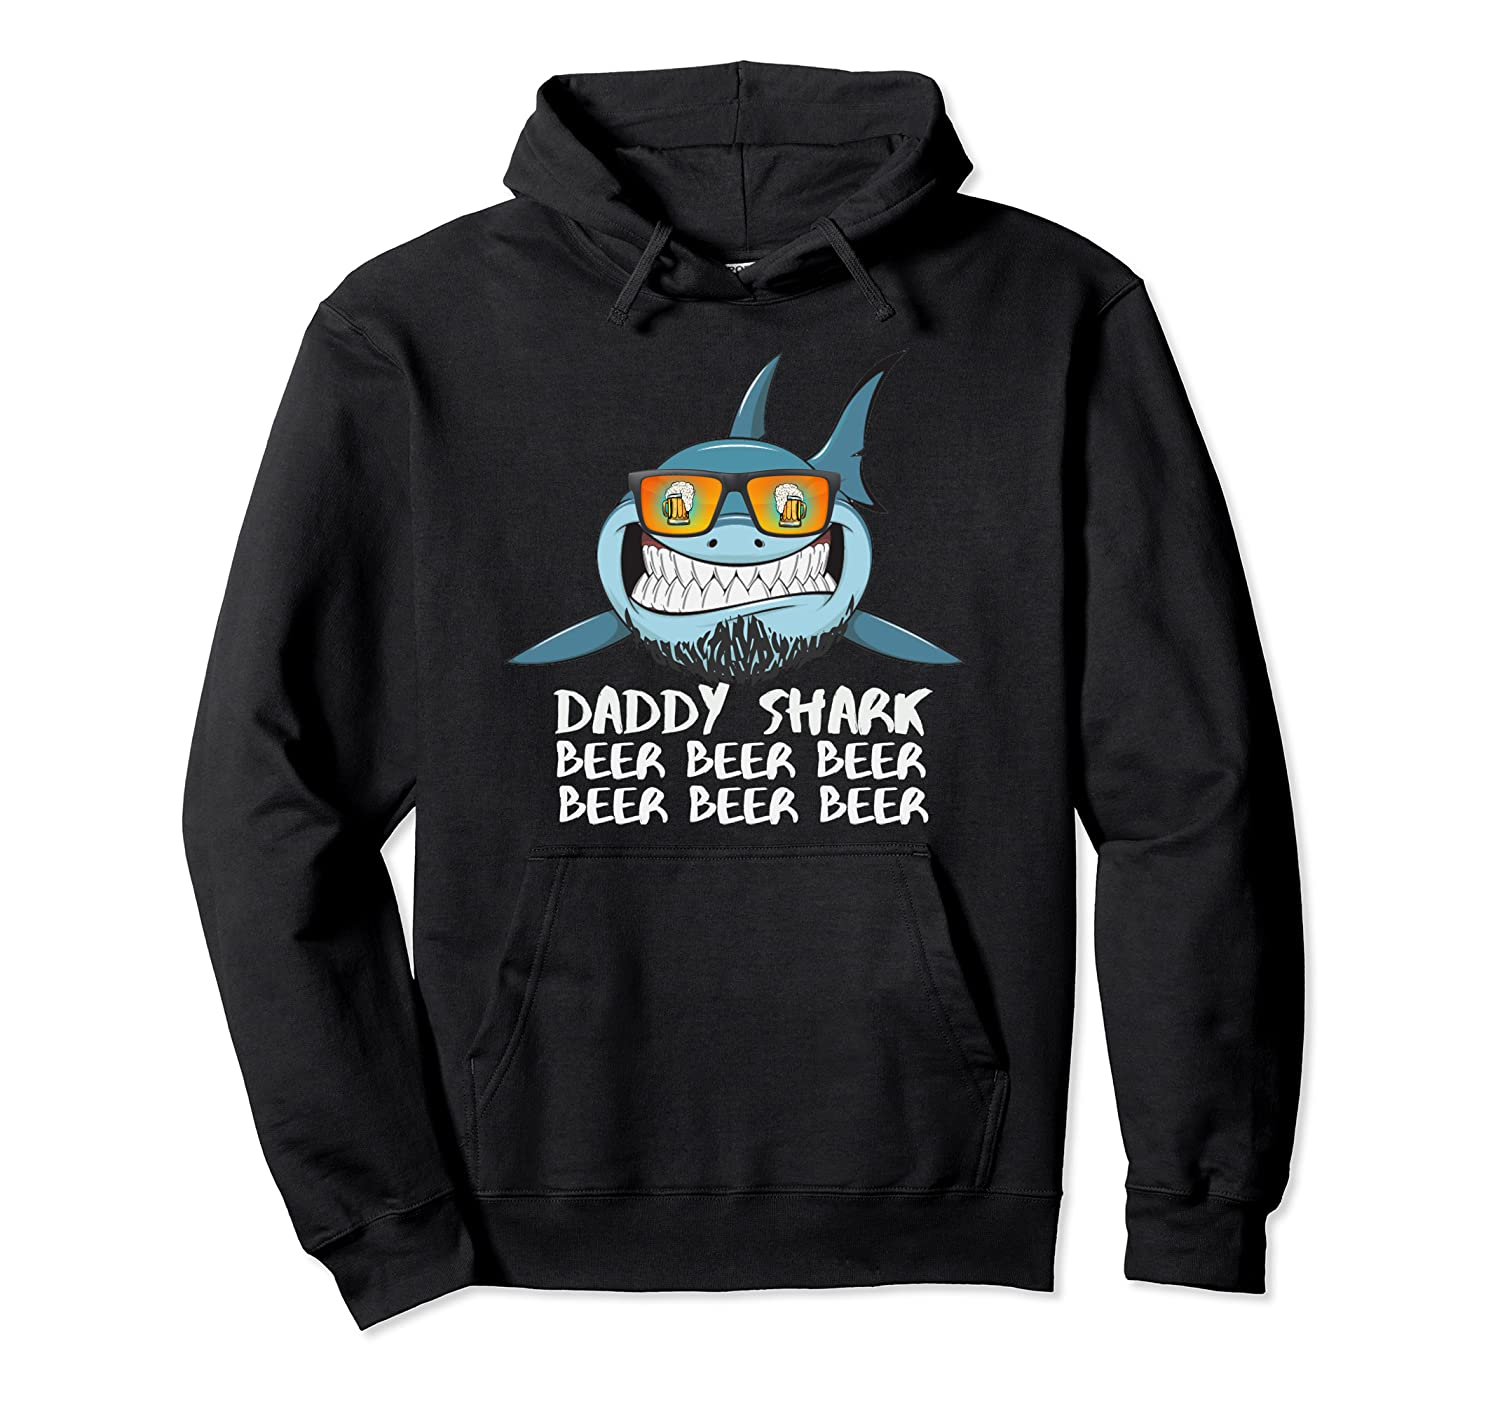 Daddy Shark Shirt Fathers Day Gift Idea For Dad Husband Beer Pullover